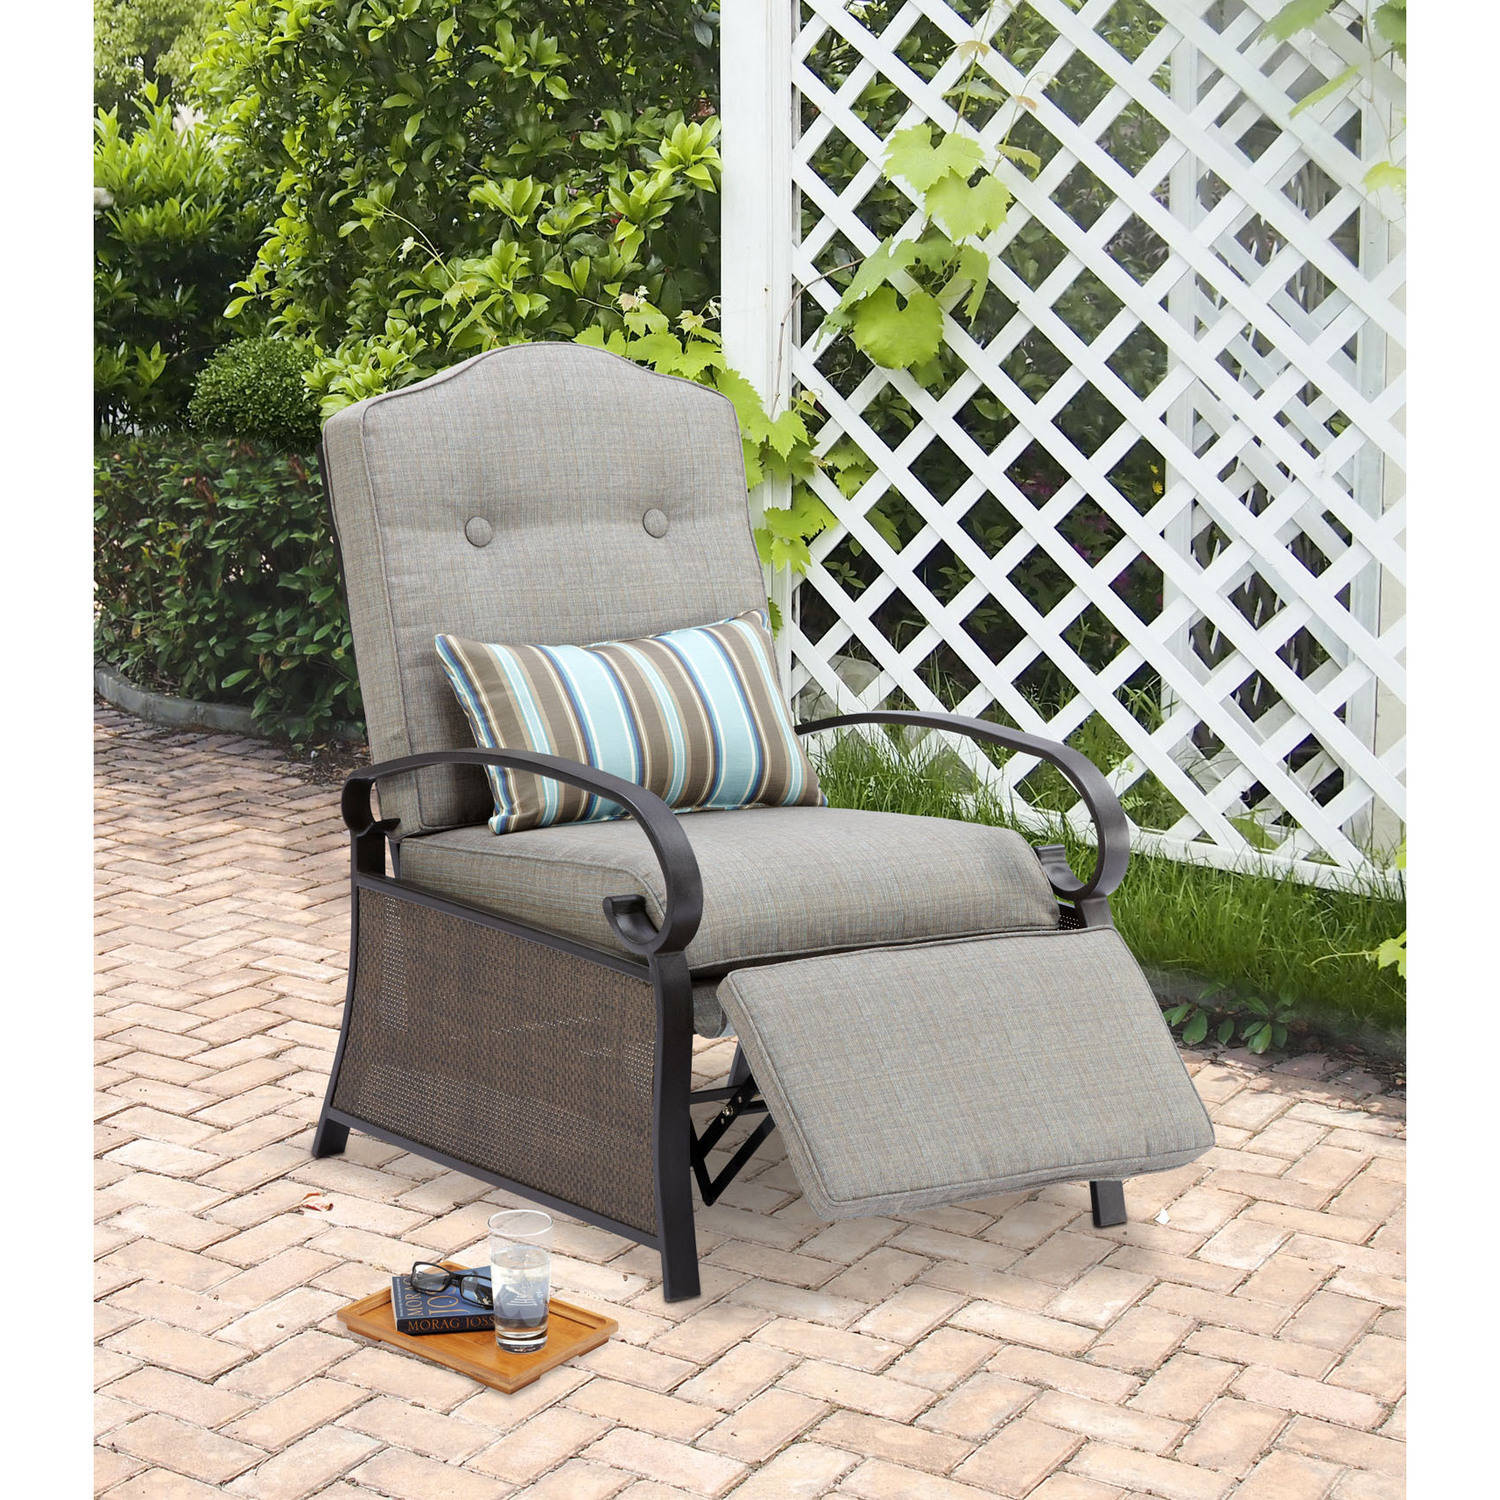 mainstays outdoor recliner, ashwood - walmart.com FQSXYEL